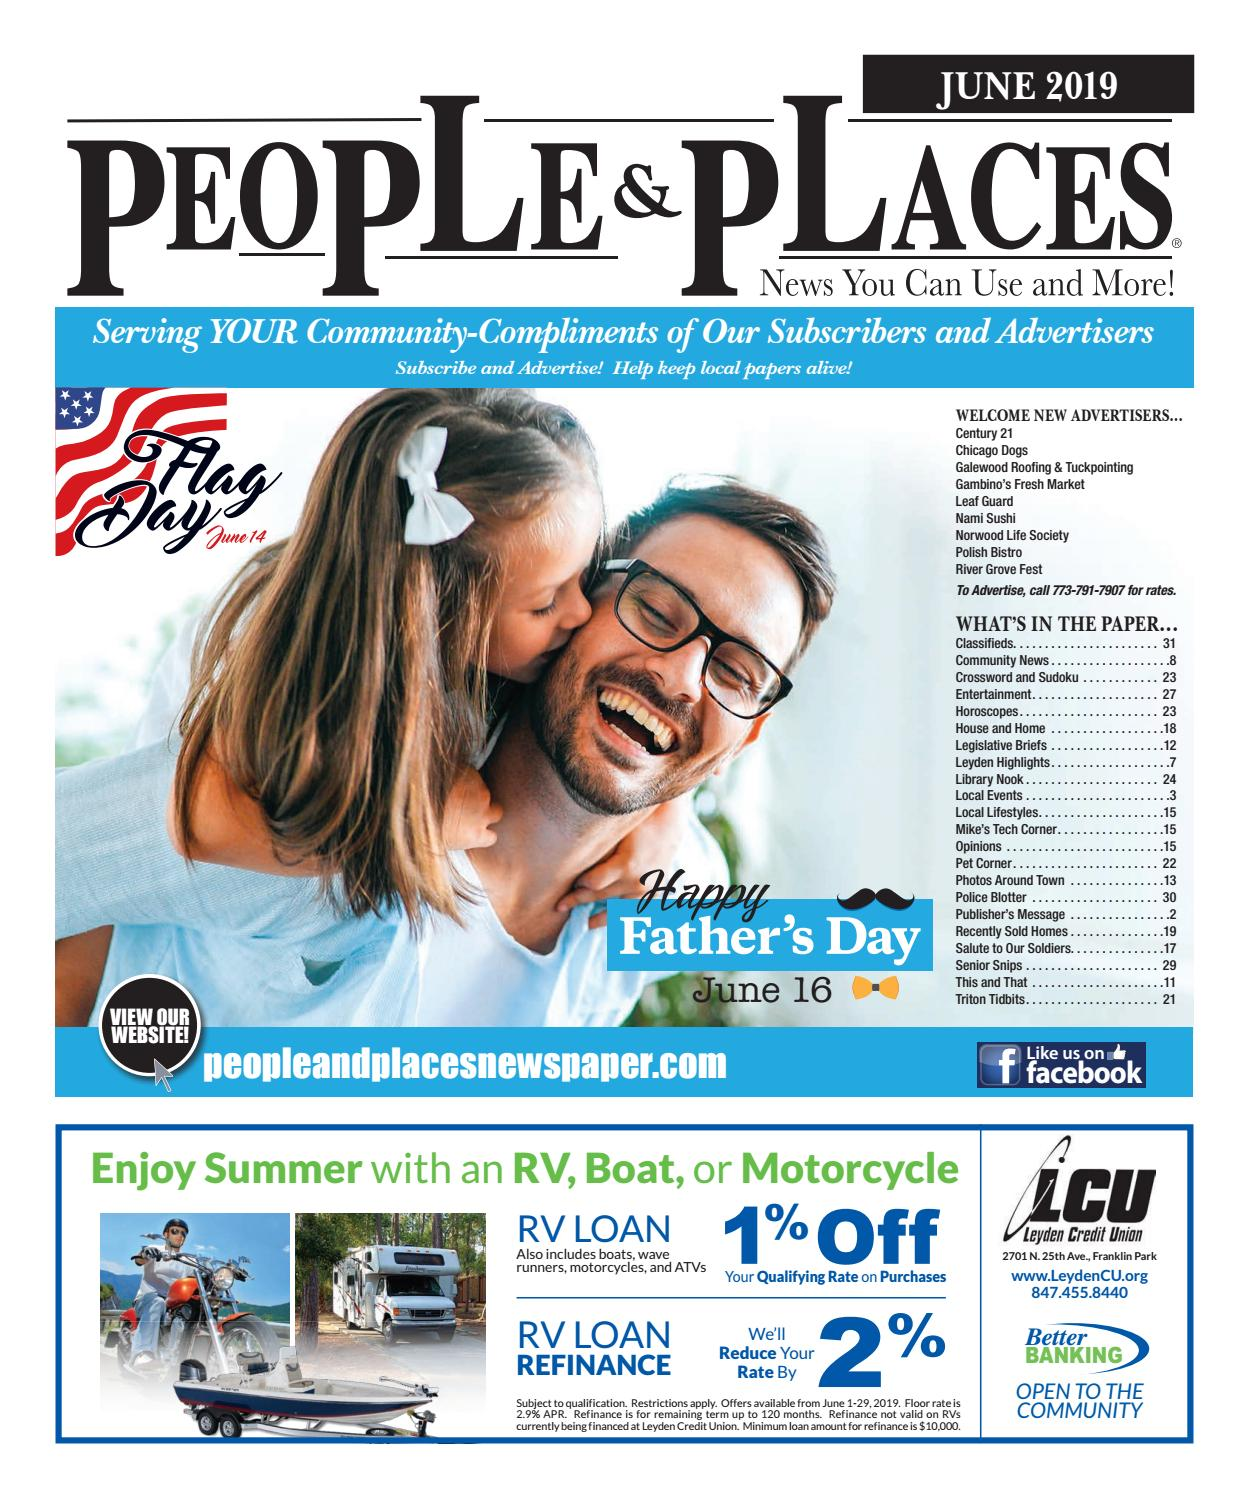 June 2019 People & Places Newspaper by Jennifer Creative - issuu